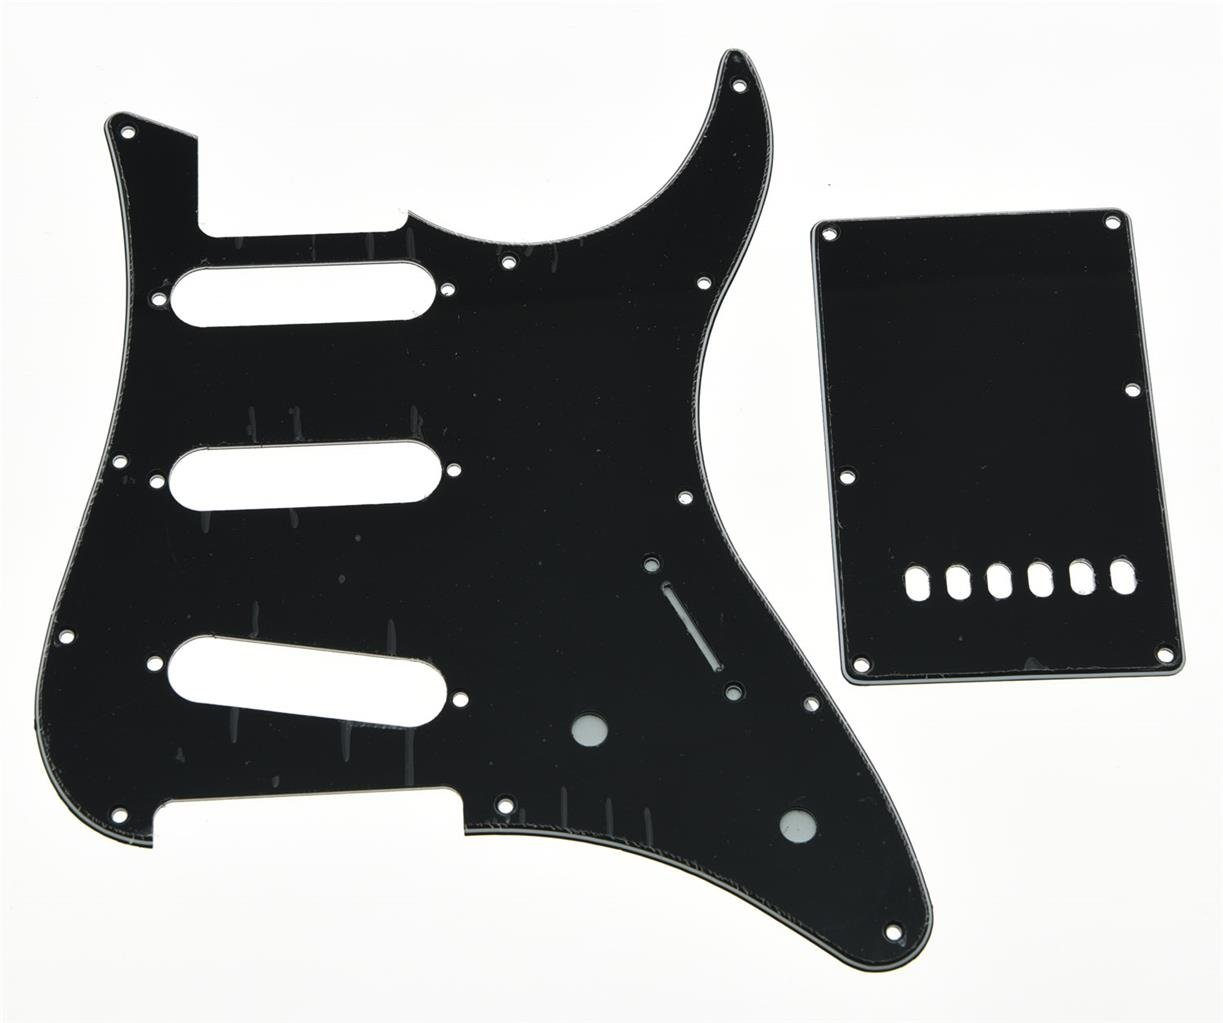 KAISH Guitar SSS Pickguard and Tremolo Trem Cover Back Plate fits Yamaha PACIFICA Guitar Black 3 Ply Kaish Music YH652